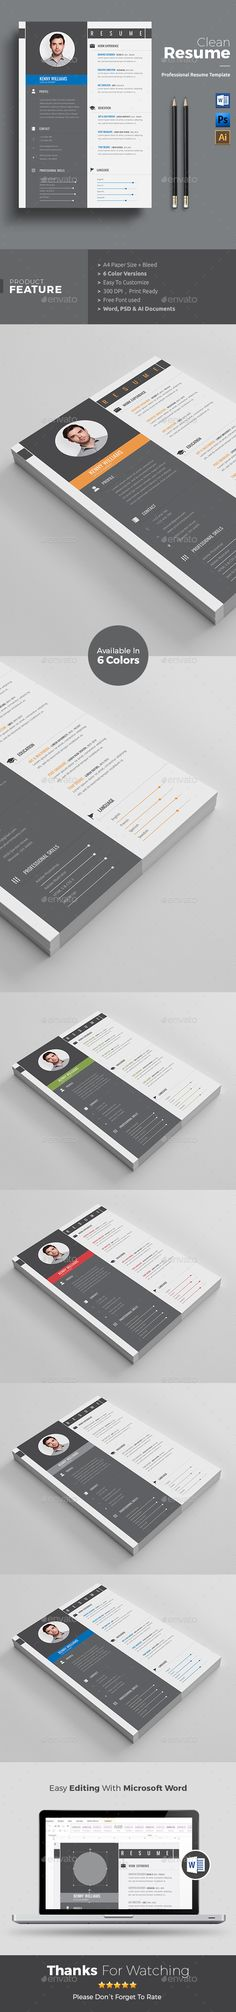 Buy Resume by themedevisers on GraphicRiver. Clean Resume / CV Template is the creative, clean, modern and professional resume template to help you land that gre. Nursing Resume Template, Teacher Resume Template, Modern Resume Template, Resume Template Free, Stationery Templates, Stationery Design, Print Templates, Simple Resume, Creative Resume